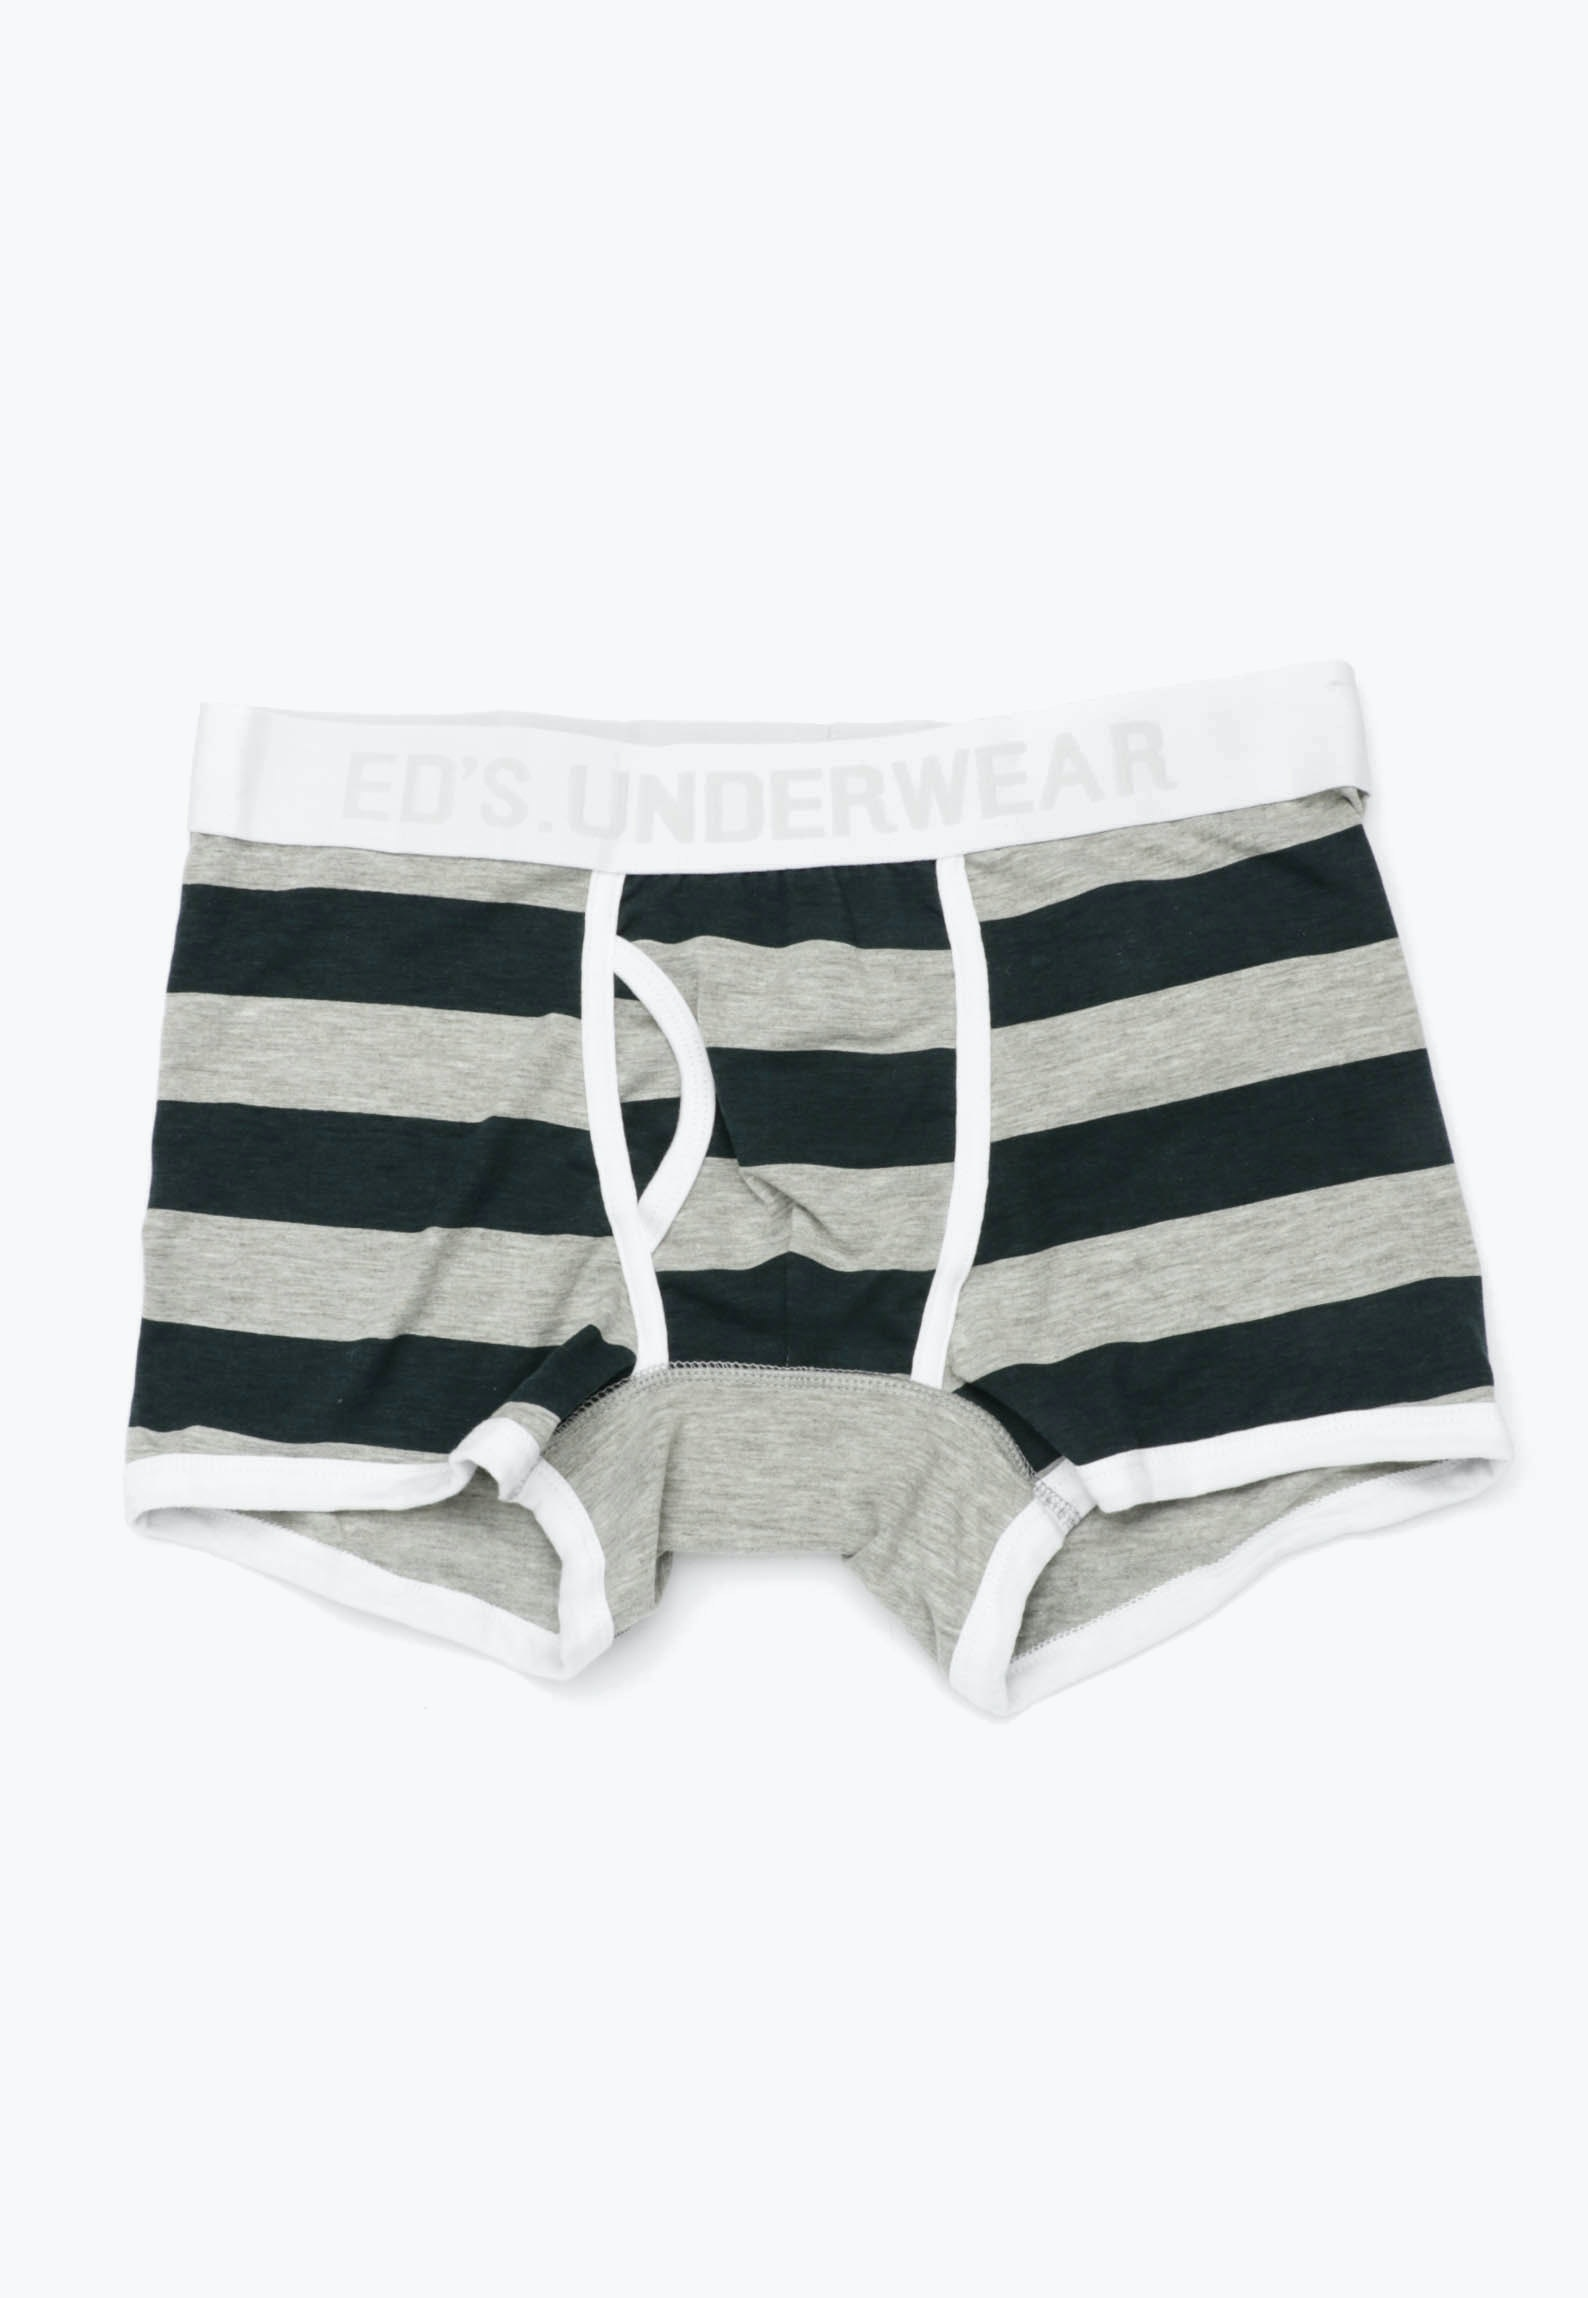 Ed's - 2 Pack Mens Trunks - MarleStripe